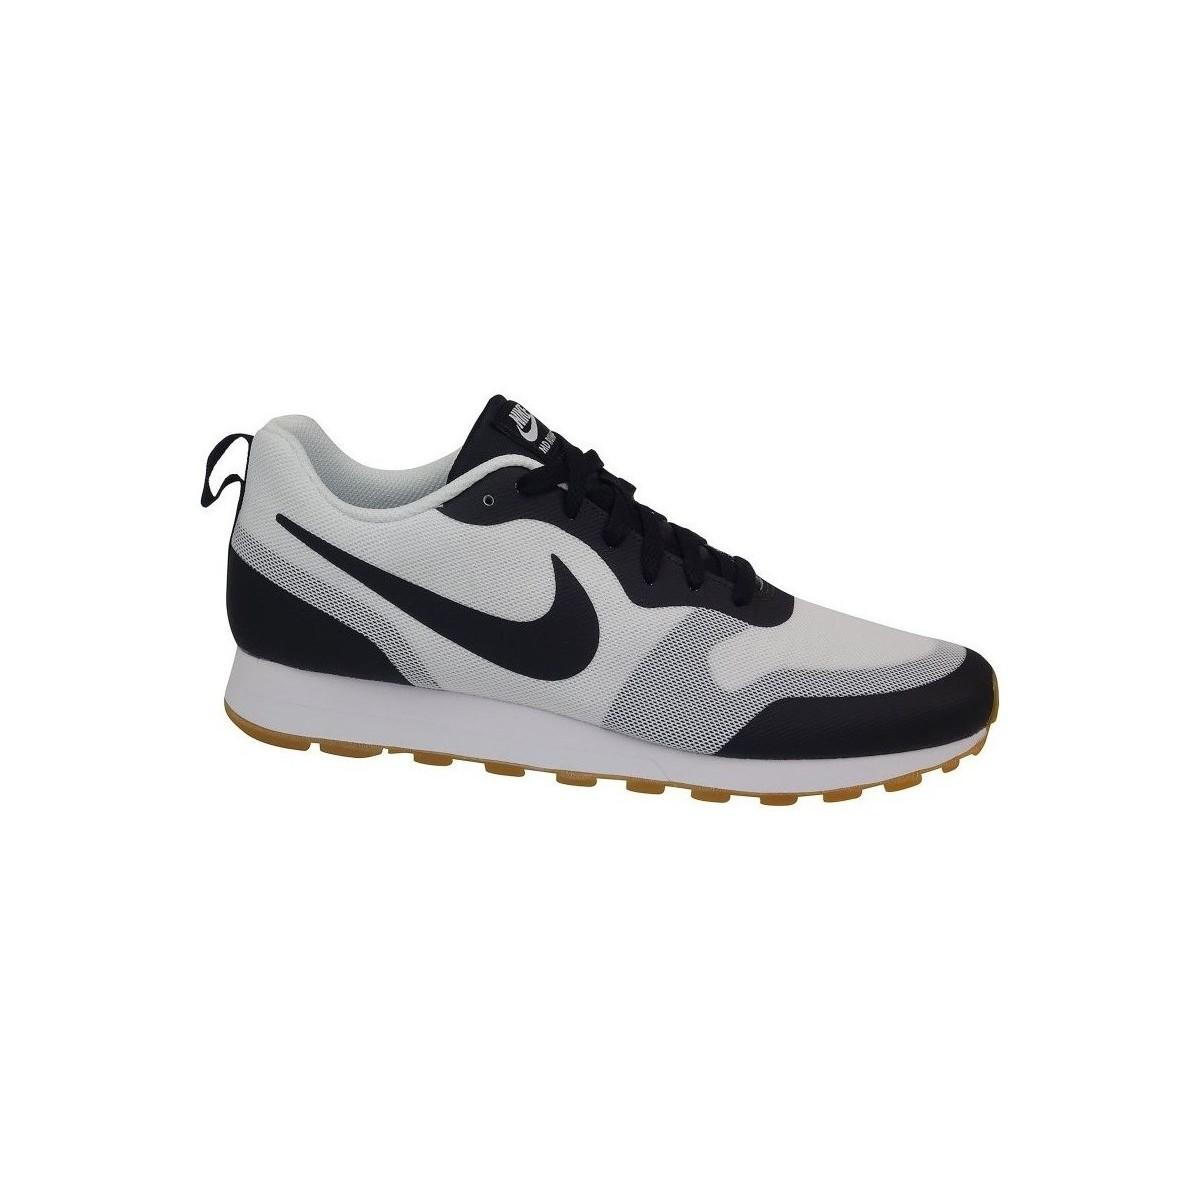 76e60f05c29 Nike Md Runner 2 19 Men s Shoes (trainers) In Multicolour for Men - Lyst